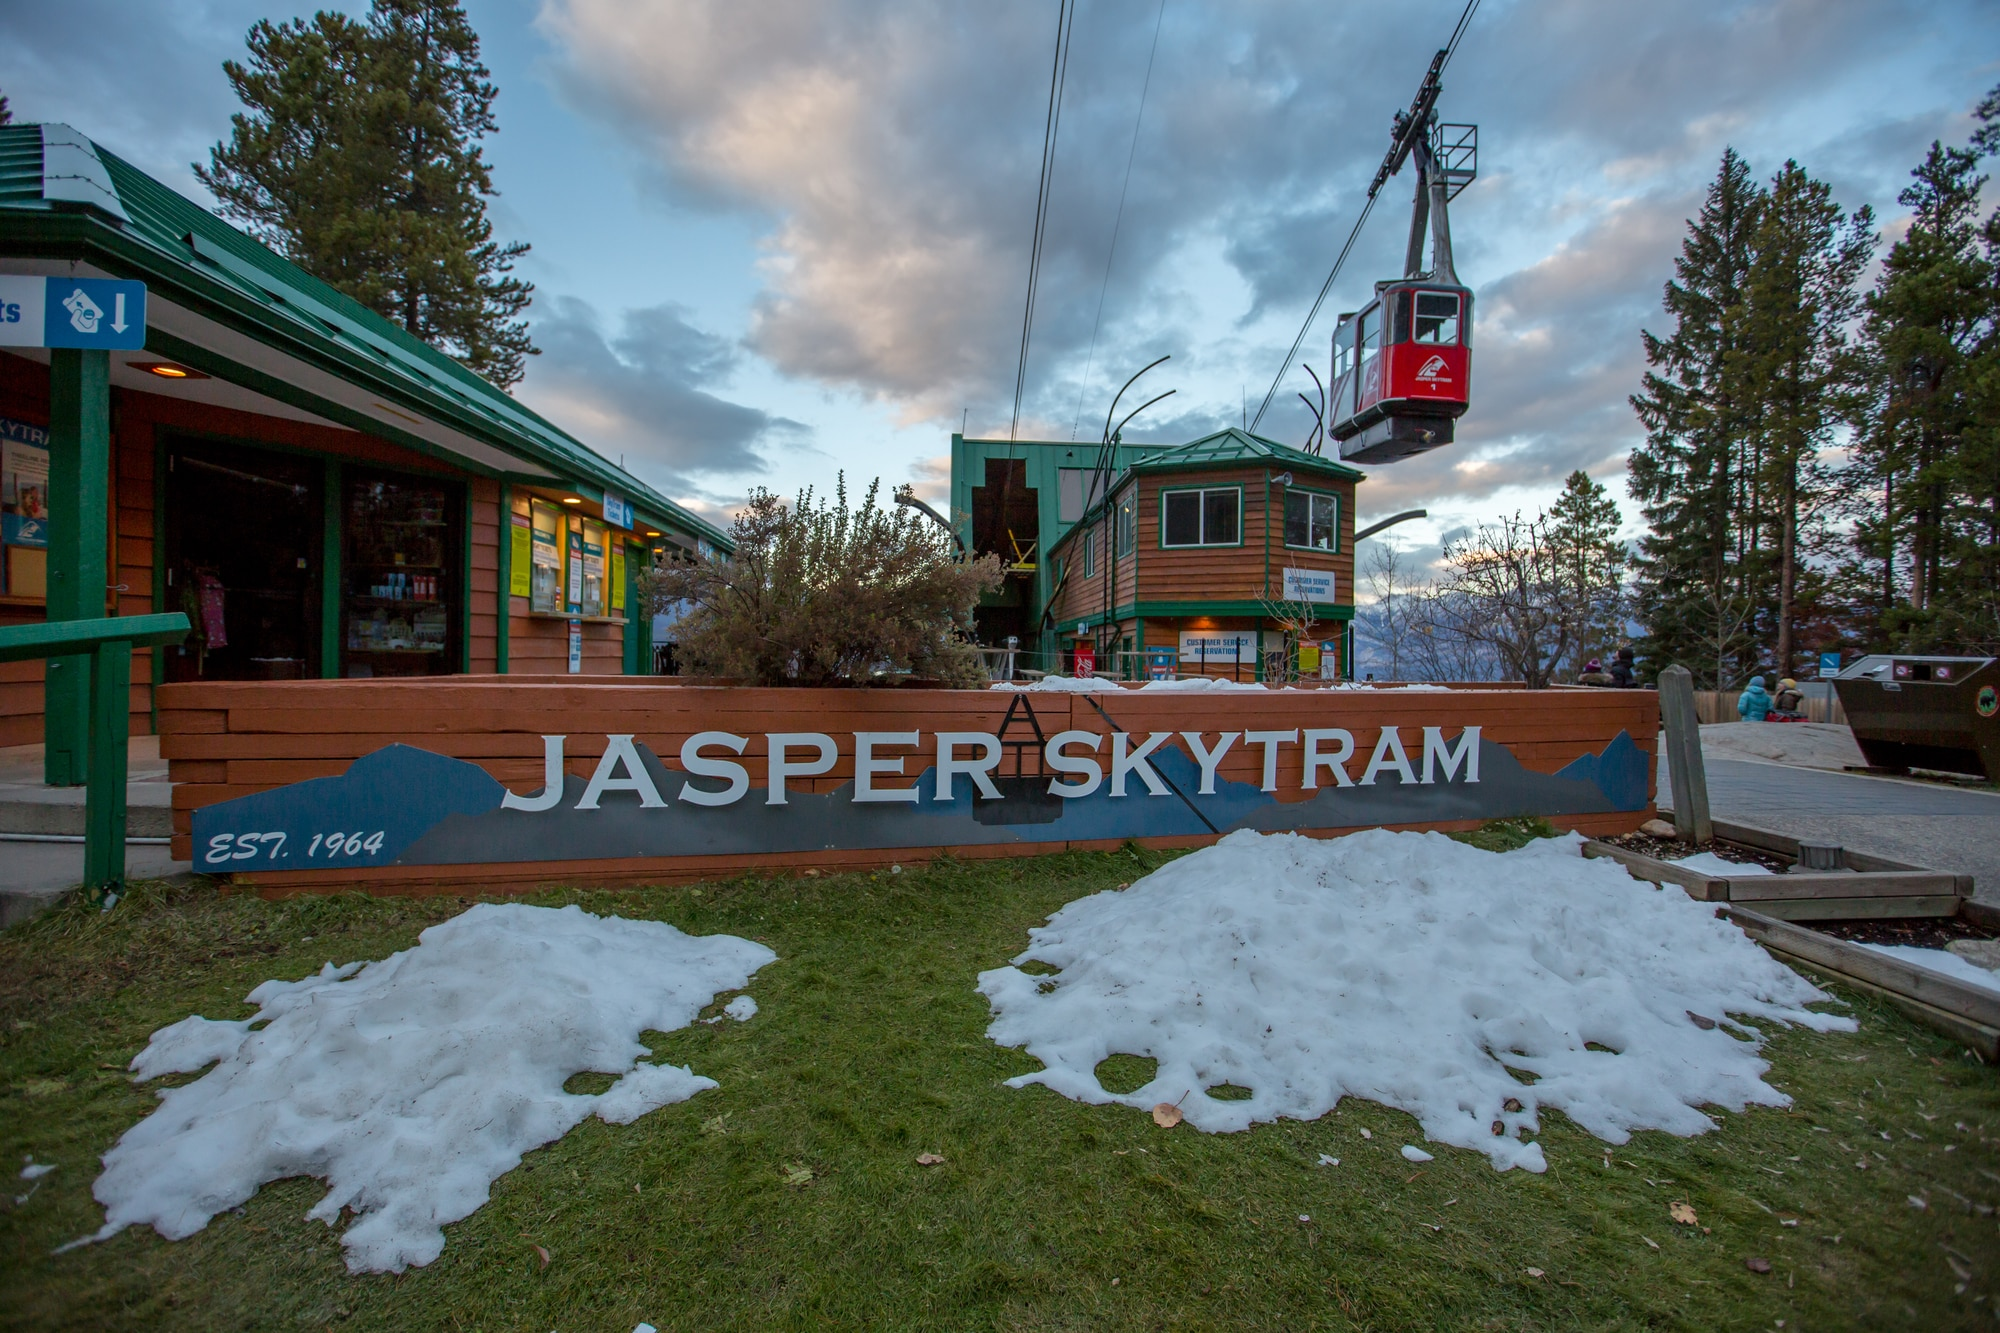 Jasper SkyTram Ticket